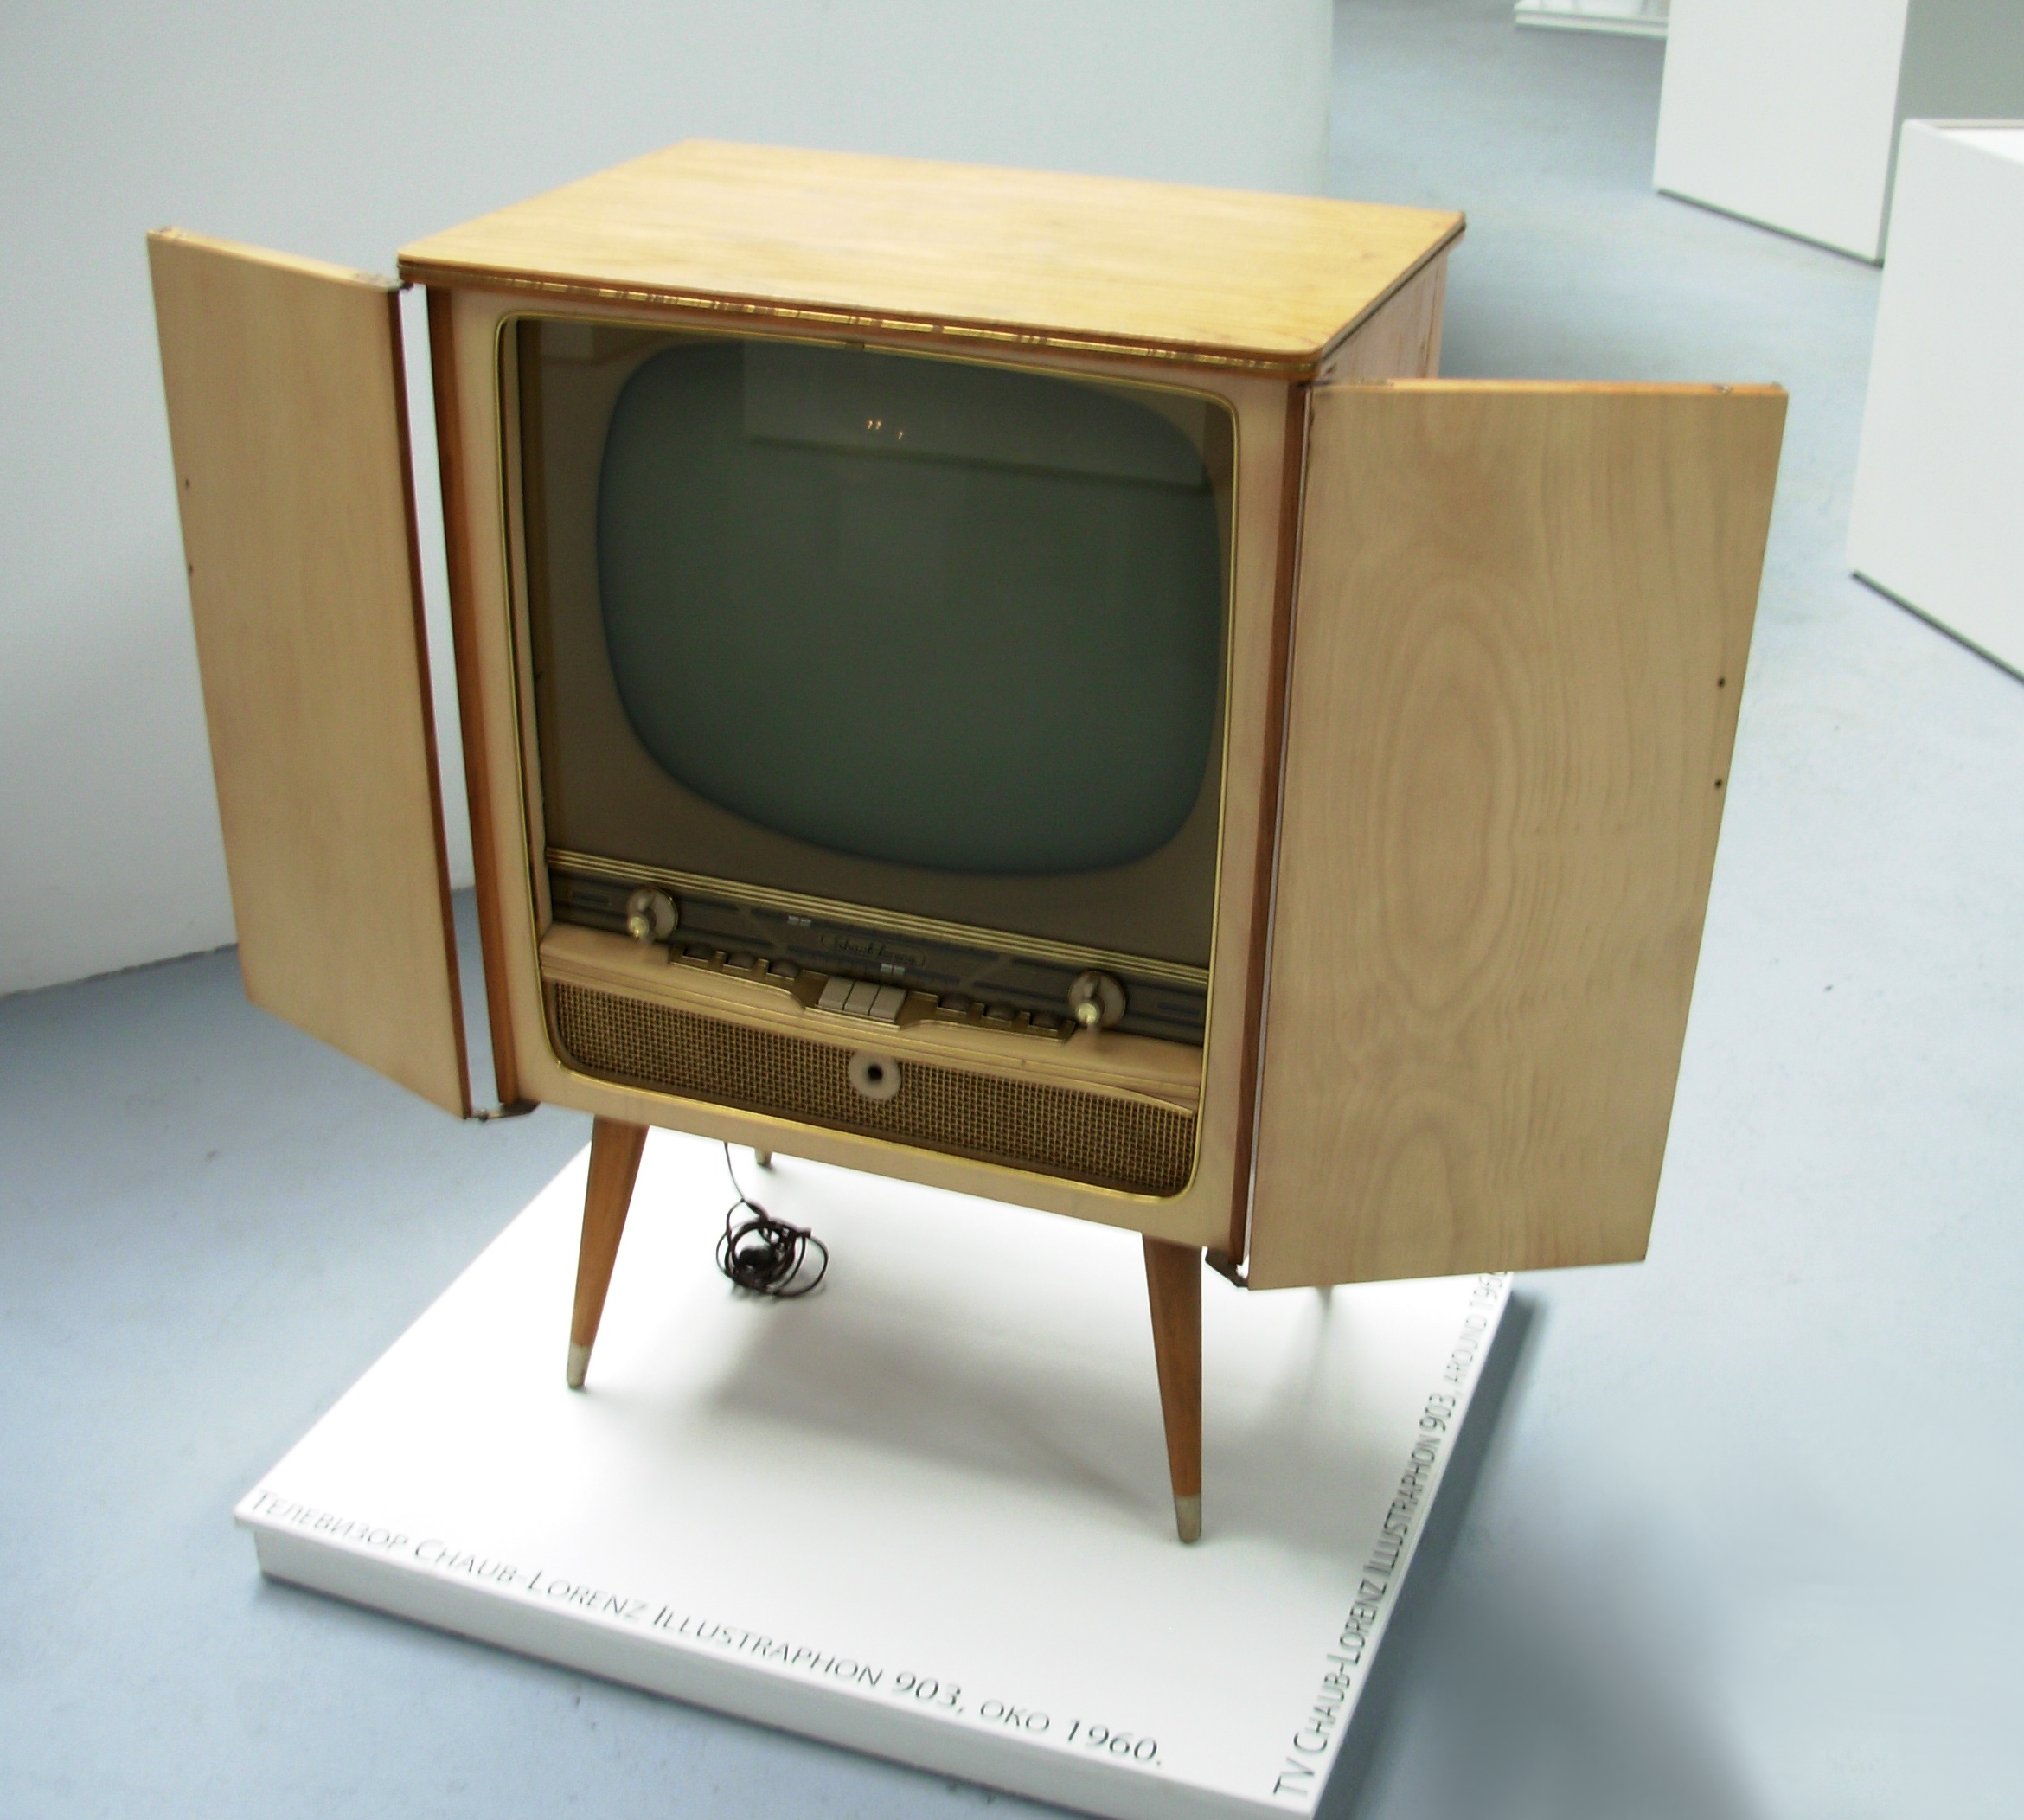 File:Televizor 1960.JPG - Wikimedia Commons